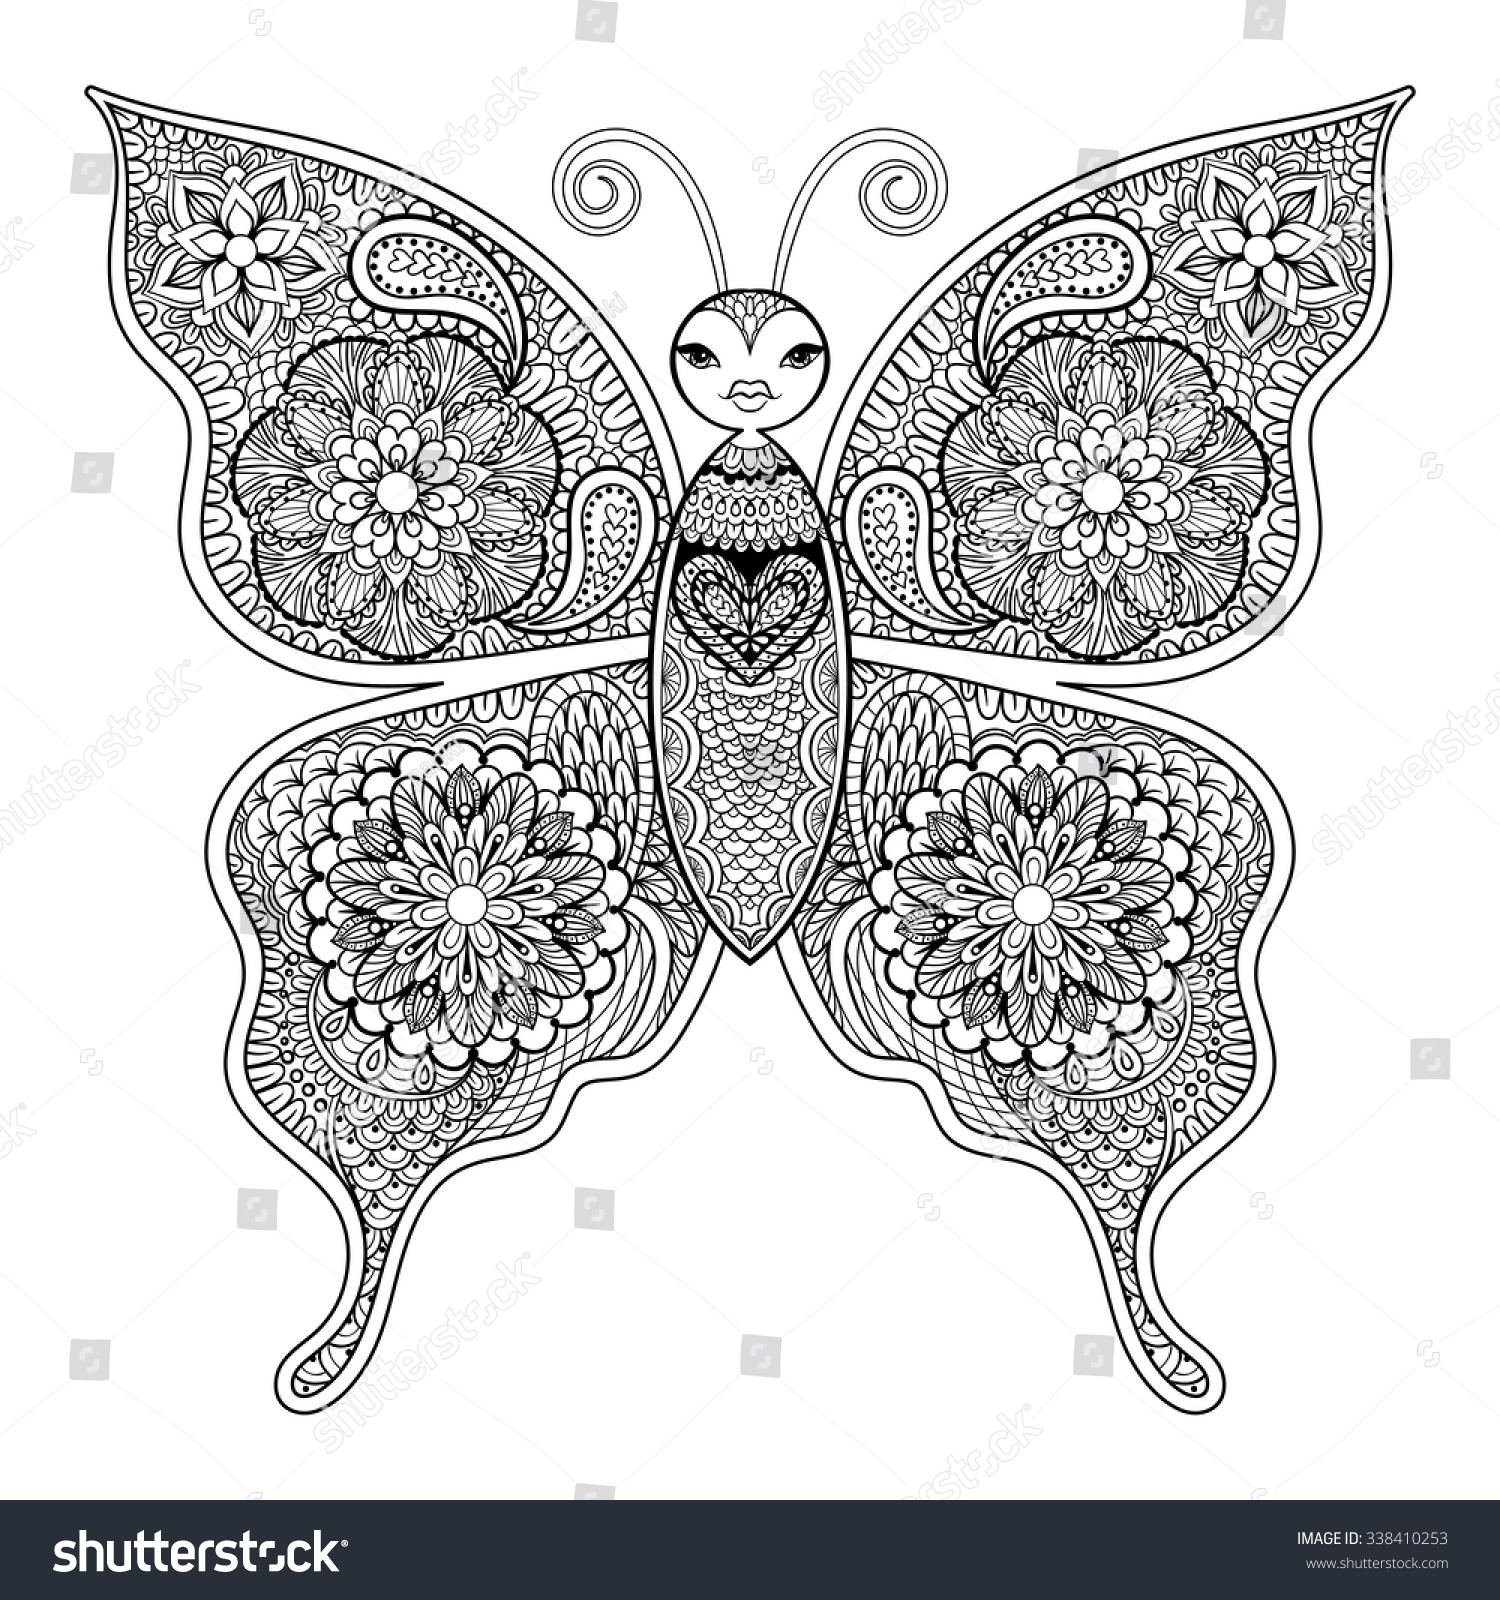 Free Coloring Pages Of Tribal Butterflies